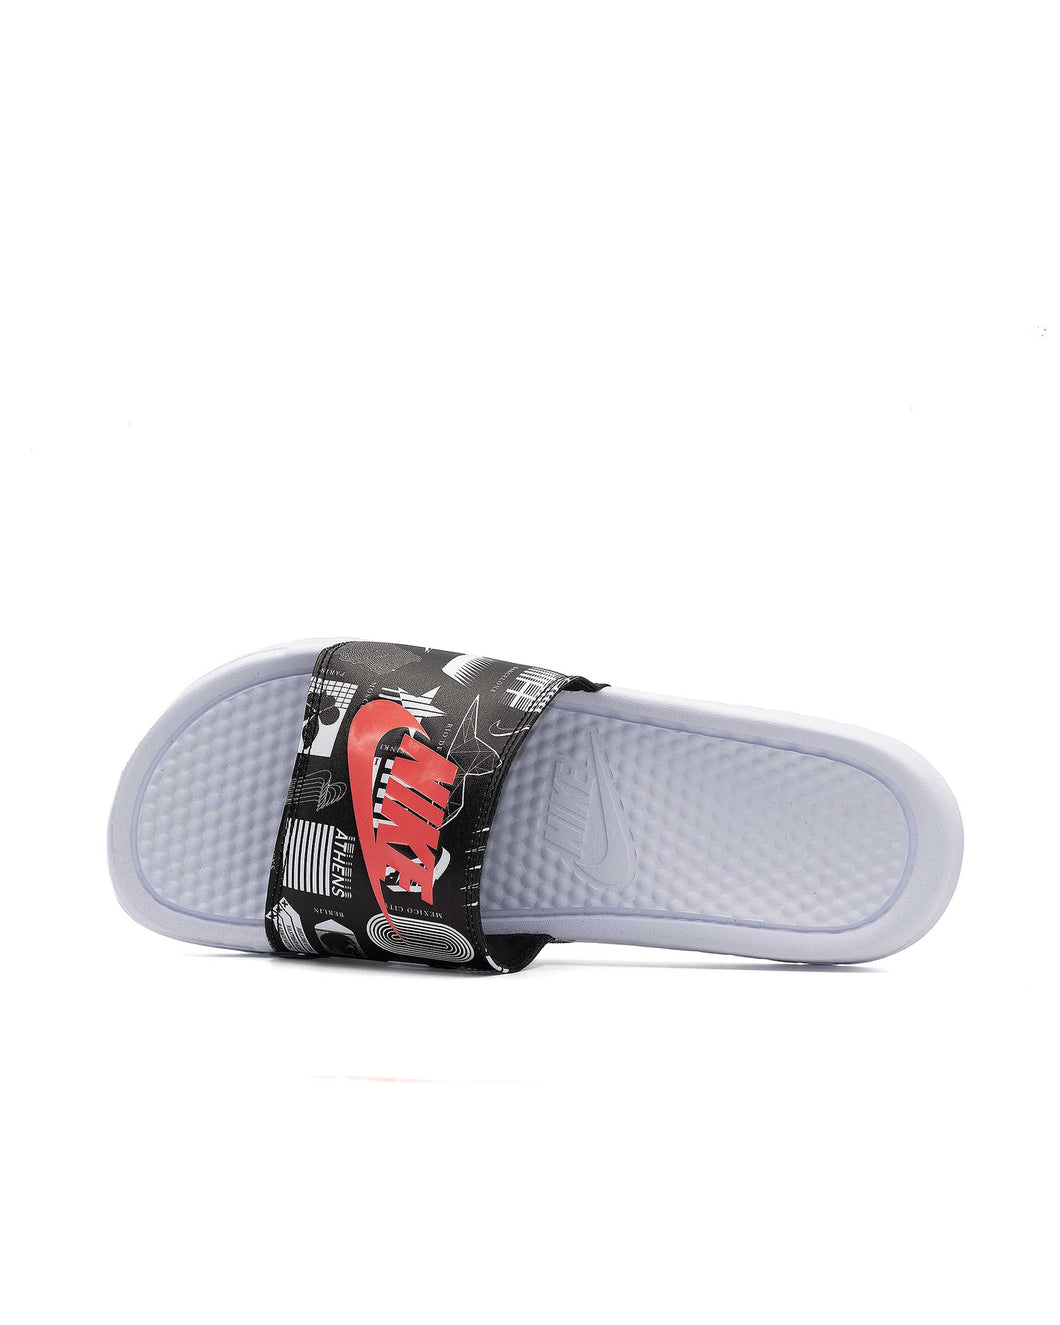 Nike Ciabatte Benassi Jdi White/University Red-Black